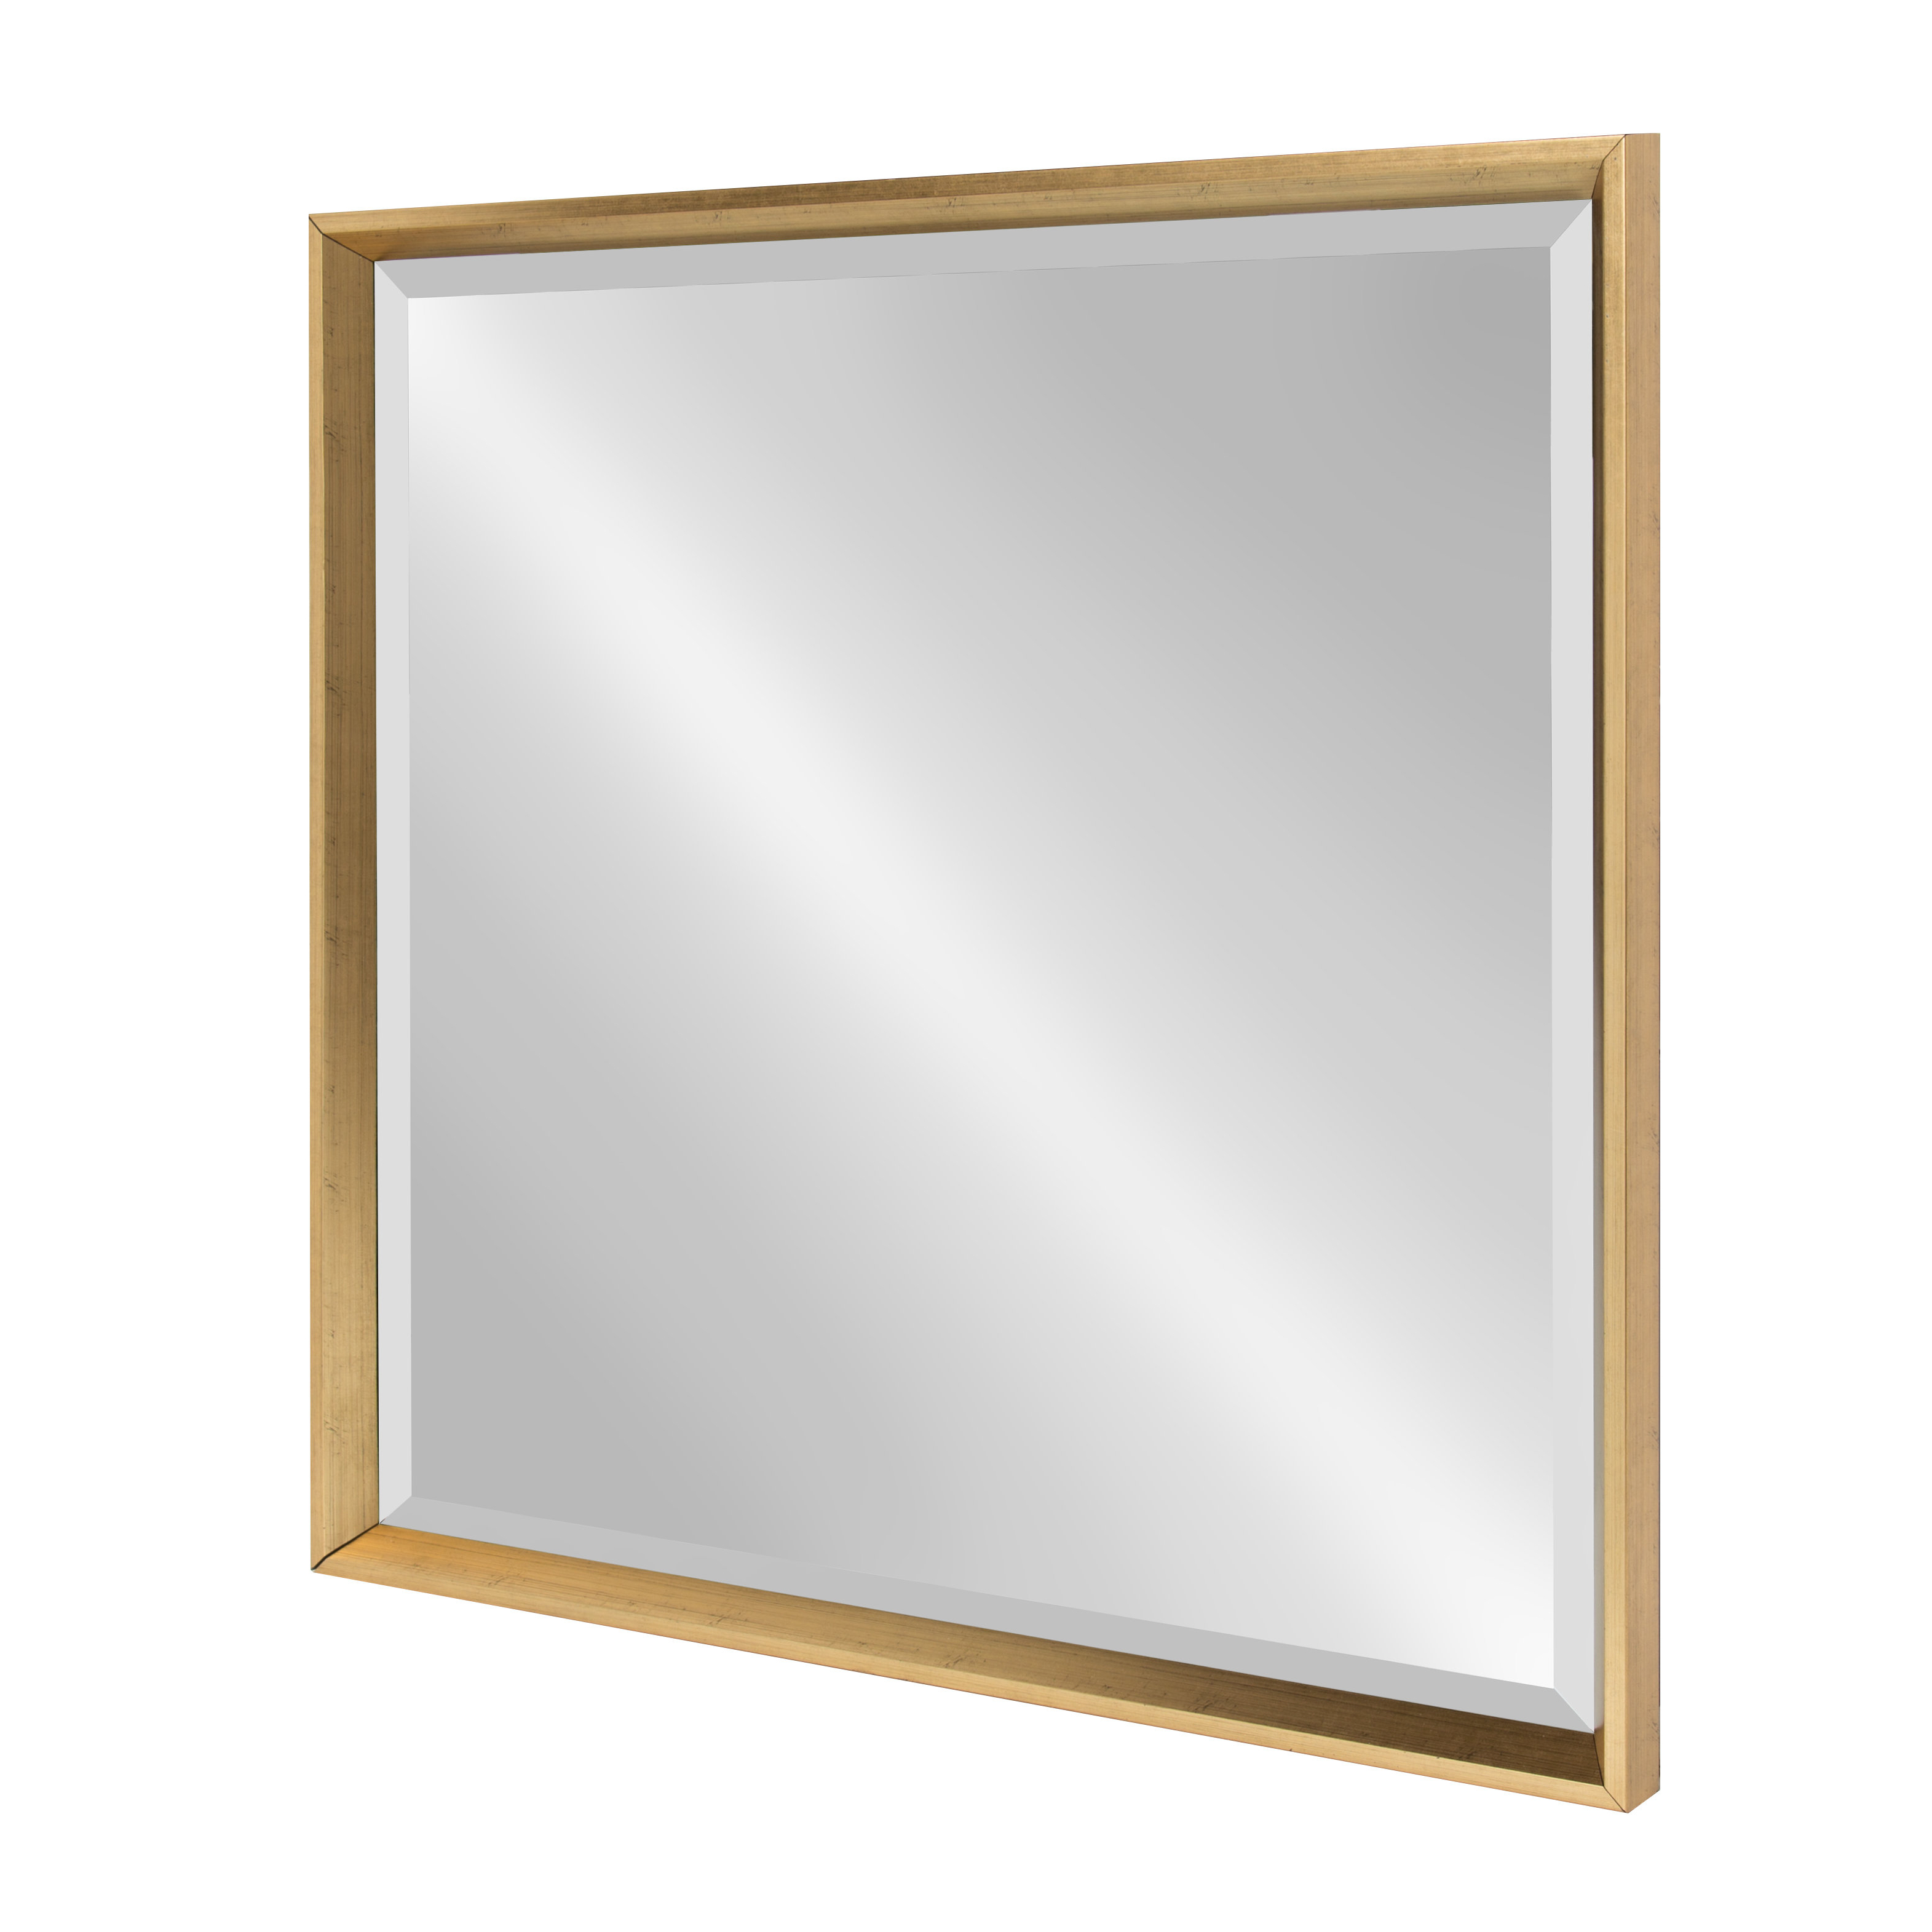 Greyleigh Sundown Framed Glam Beveled Accent Mirror For Well Known Lugo Rectangle Accent Mirrors (View 5 of 20)